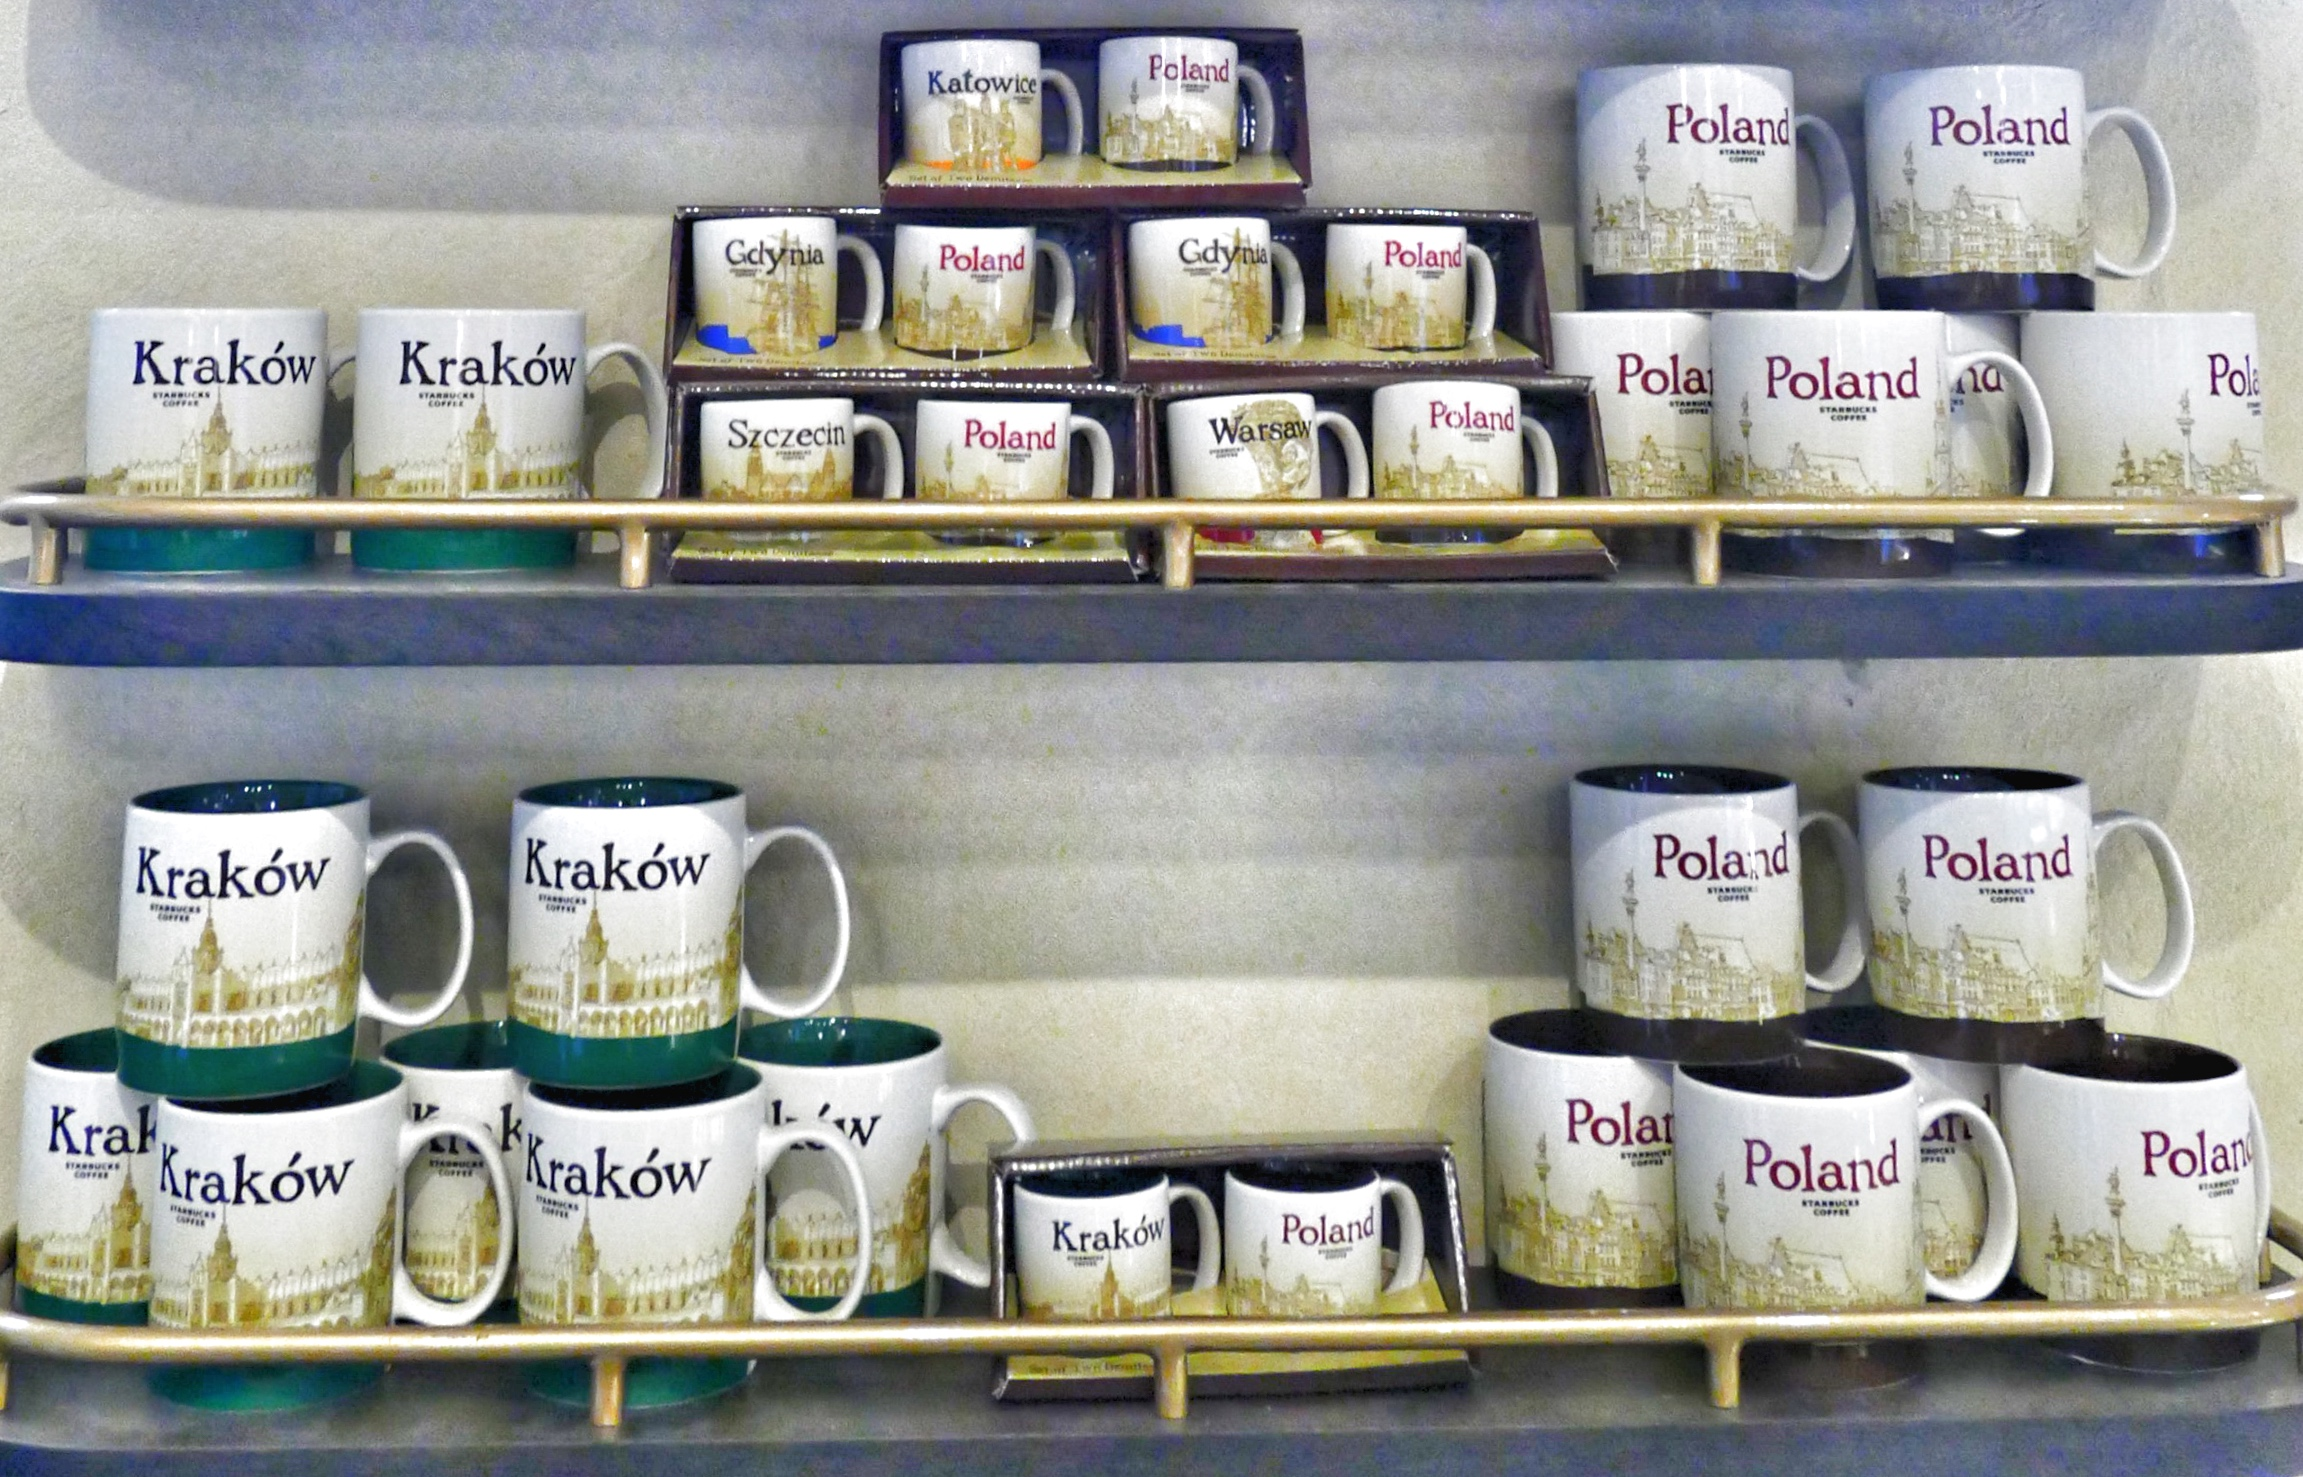 Starbucks coffee mugs in Krakow